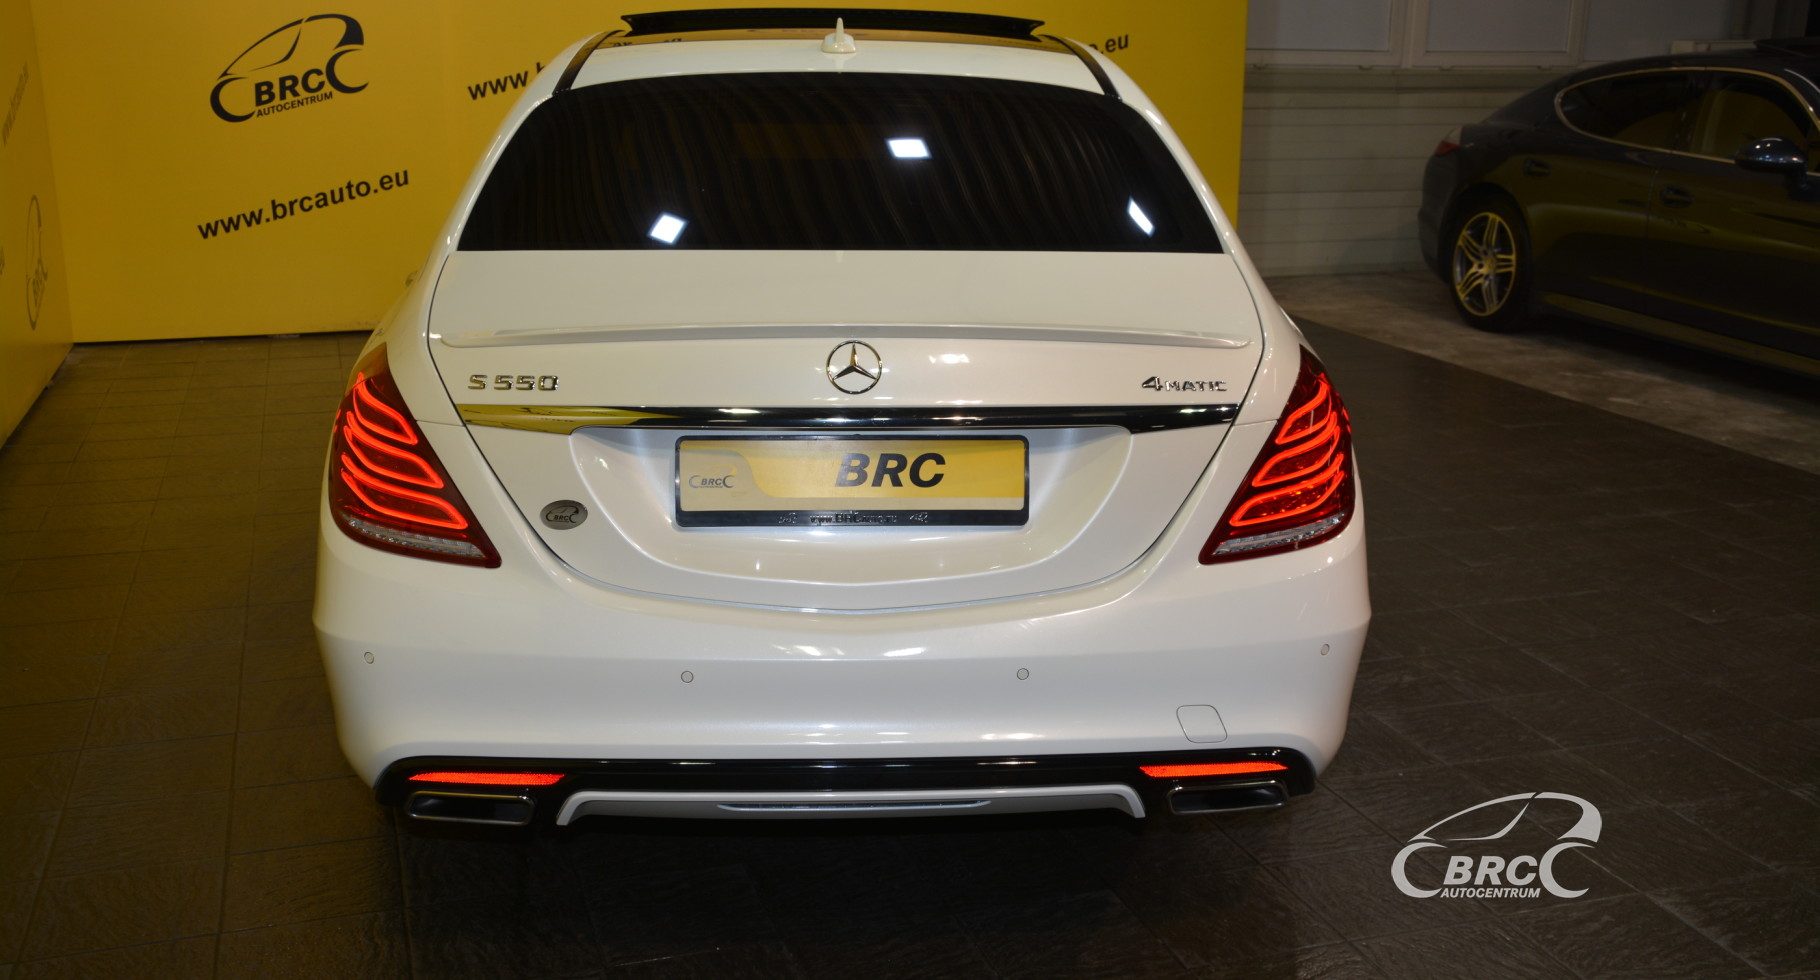 Mercedes-Benz S 550 4 MATIC Automatas